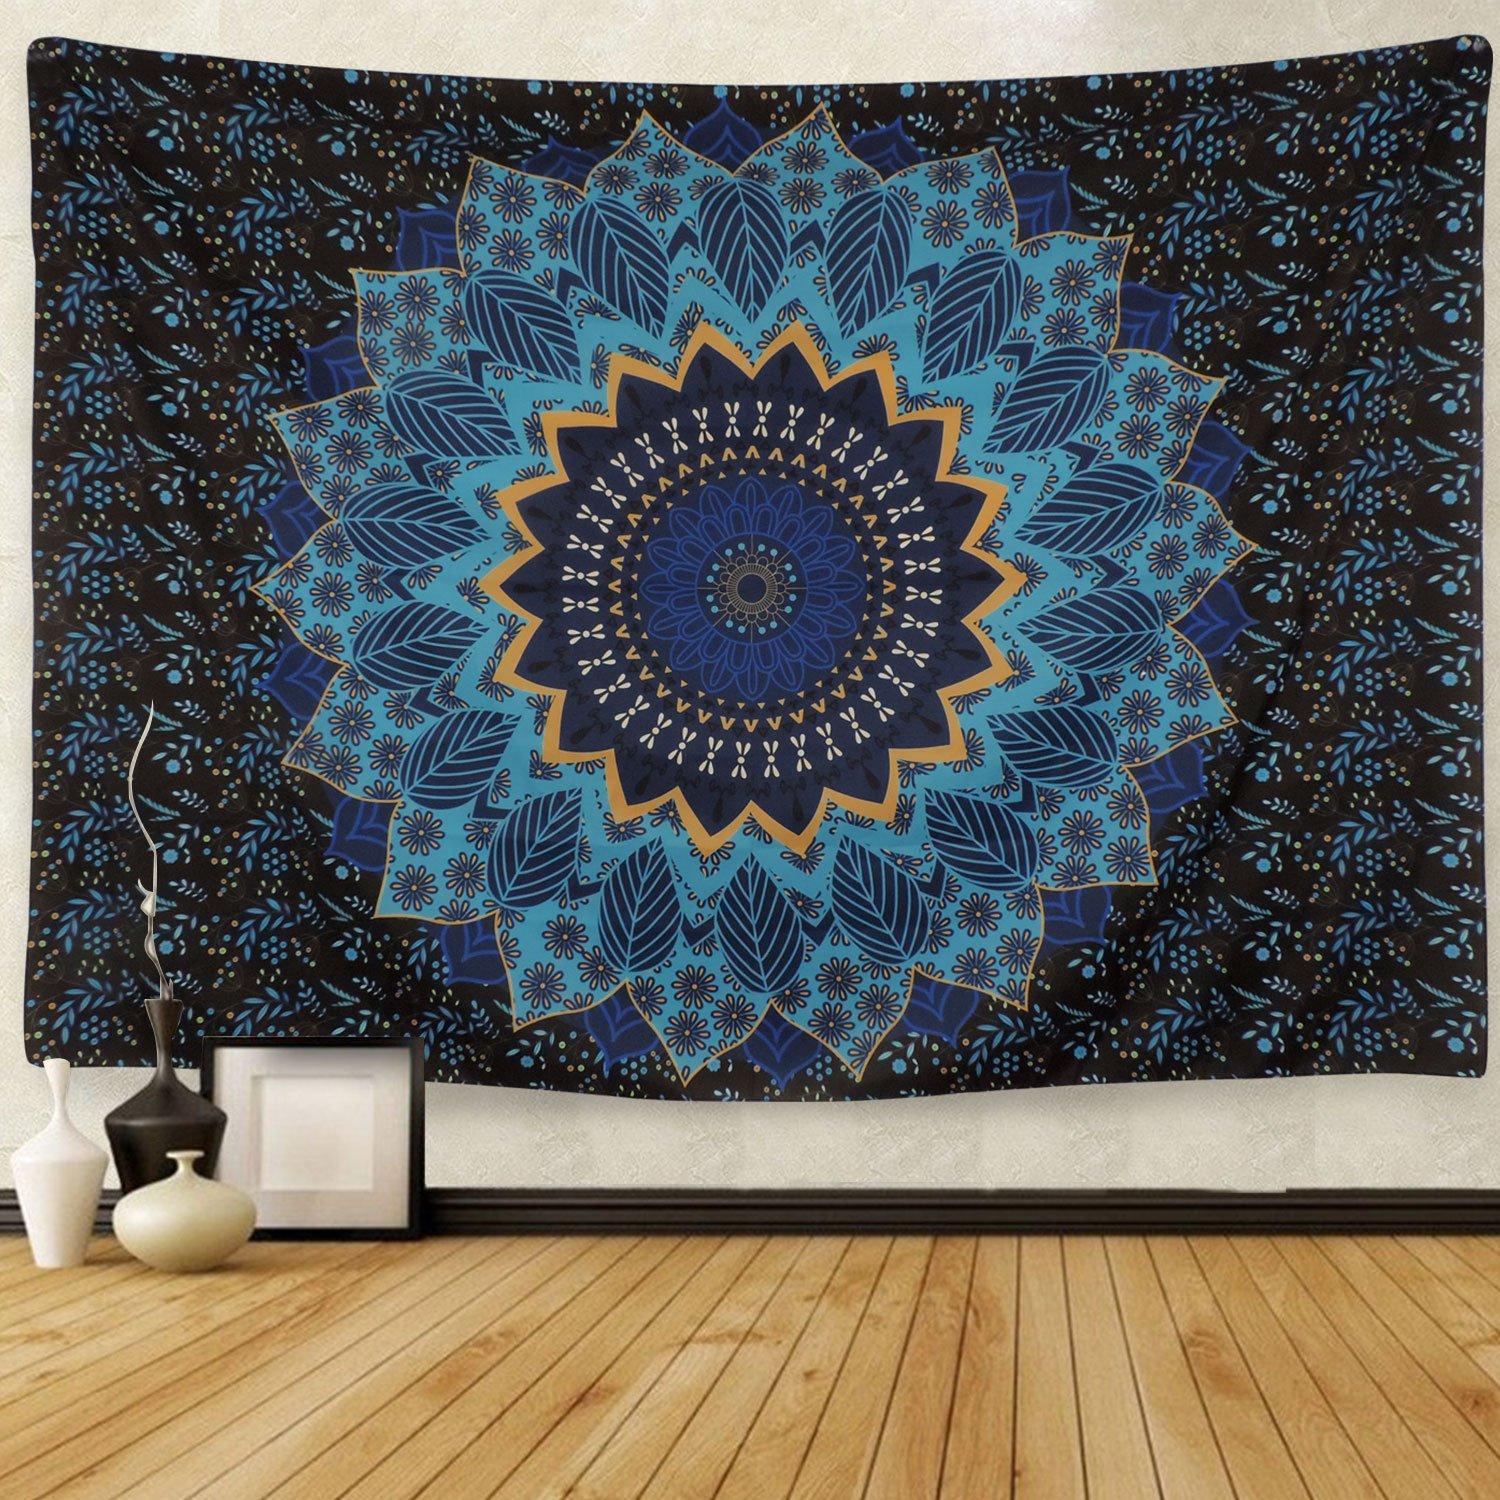 Tapestry Wall Hanging Tapestries Blue Star Hippie Tapestry Hippy Mandala Bohemian Tapestries Indian Dorm Decor Psychedelic Tapestry Wall Hanging Ethnic Decorative Hippie Tapestry